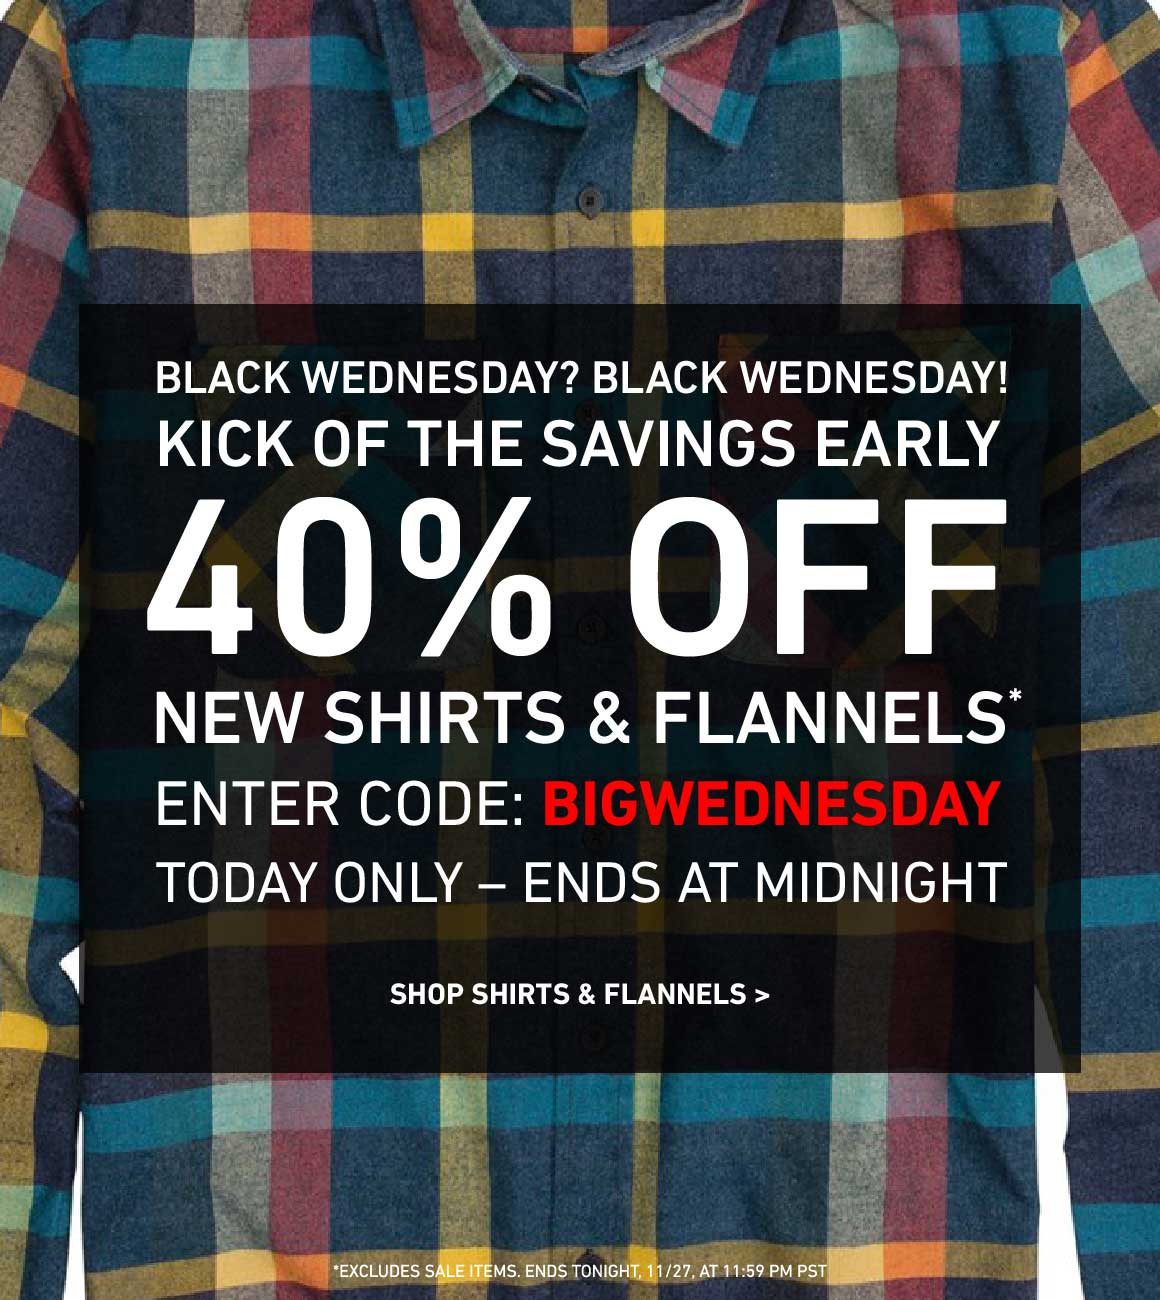 ENDS TONIGHT AT MIDNIGHT: 40% Off New Shirts and Flannels! Enter Code: BIGWEDNESDAY